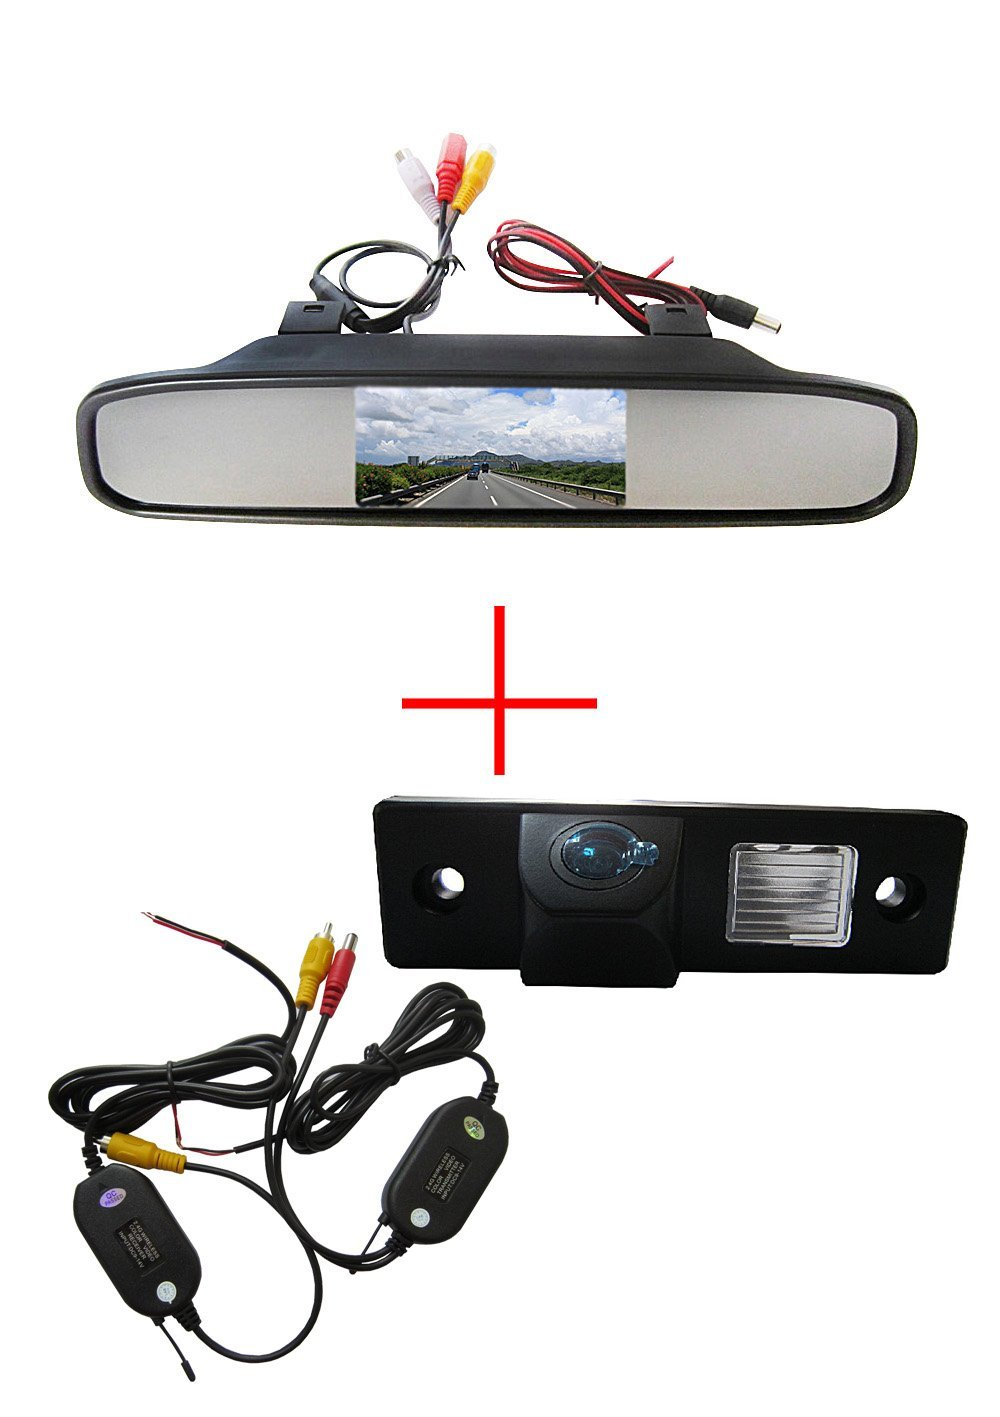 "Wireless CCD Color Car Auto Vehicle HD Back Up Rear View Reverse Parking Camera for CHEVROLET Epica Lova Aveo Captiva Cruze Matis Lacetti Spark BUICK GL8 EXCELLE HRV,with 4.3"" Screen Car Vehicle Rear view Mirror Monitor for DVD/VCR/Car Reverse Camera(DC 12V / PAL / NTSC / 2 Ways Video Inputs)"